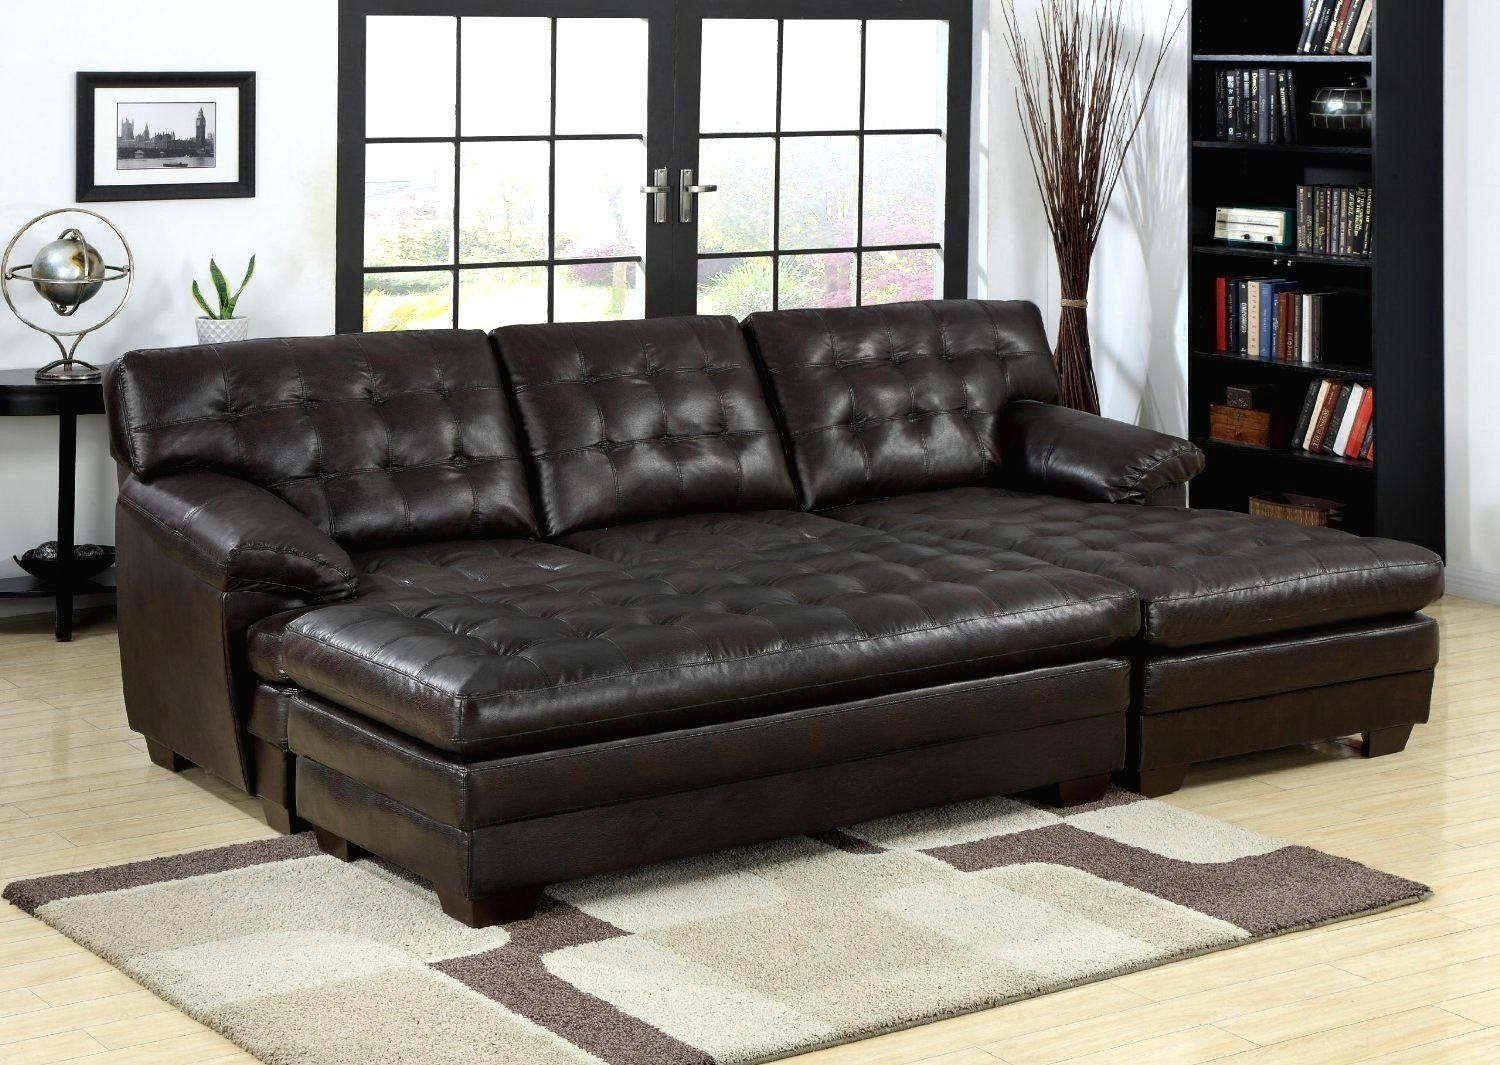 Awesome Fresh Sectional Sofas With Chaise Lounge 96 Additional Small Home Decor Inspiration